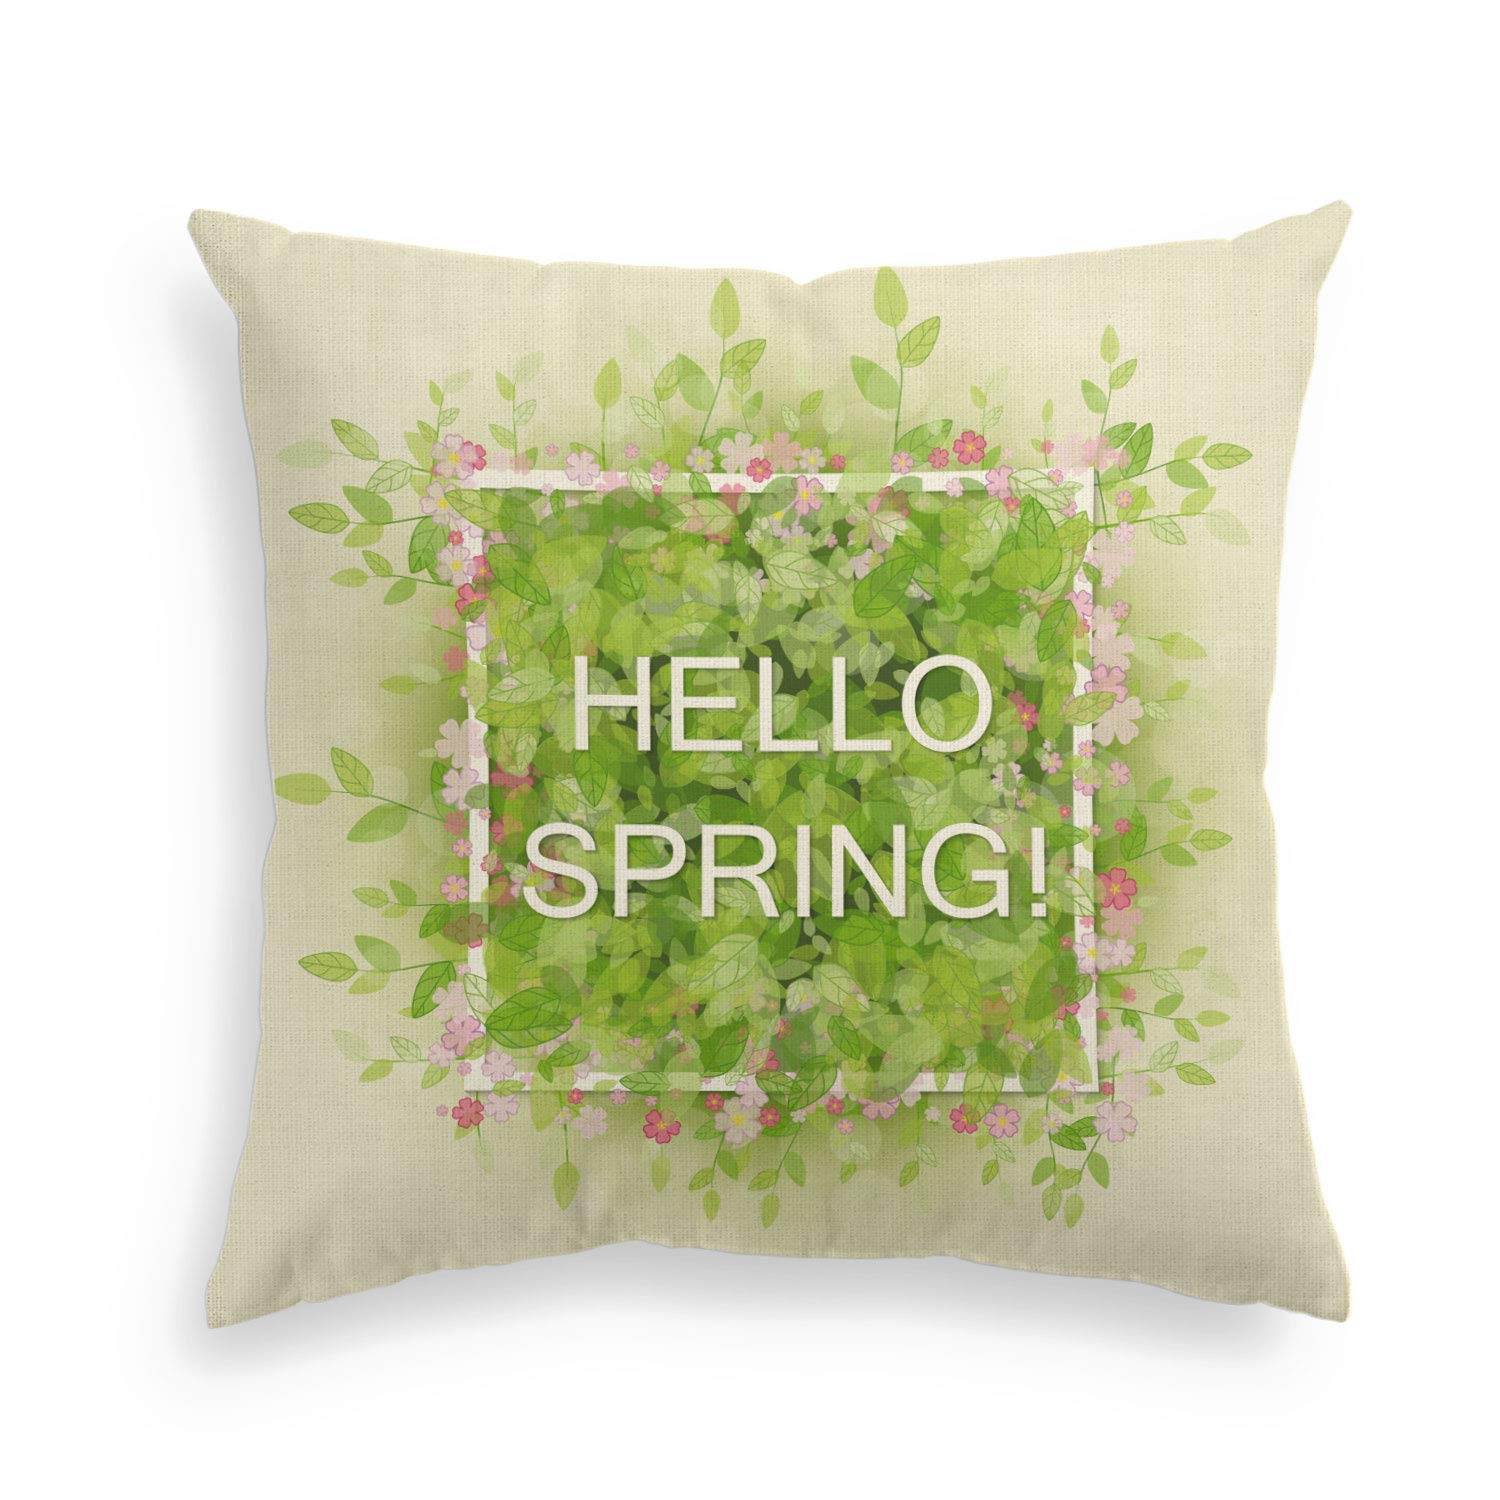 Invisible Zipper AVOIN Hello Spring Pillow Cover Flower Linen Decorative Throw Pillowcase 18 x 18 Inch Cute Easter Cushion Protector for Sofa Couch Home Decor Living Room